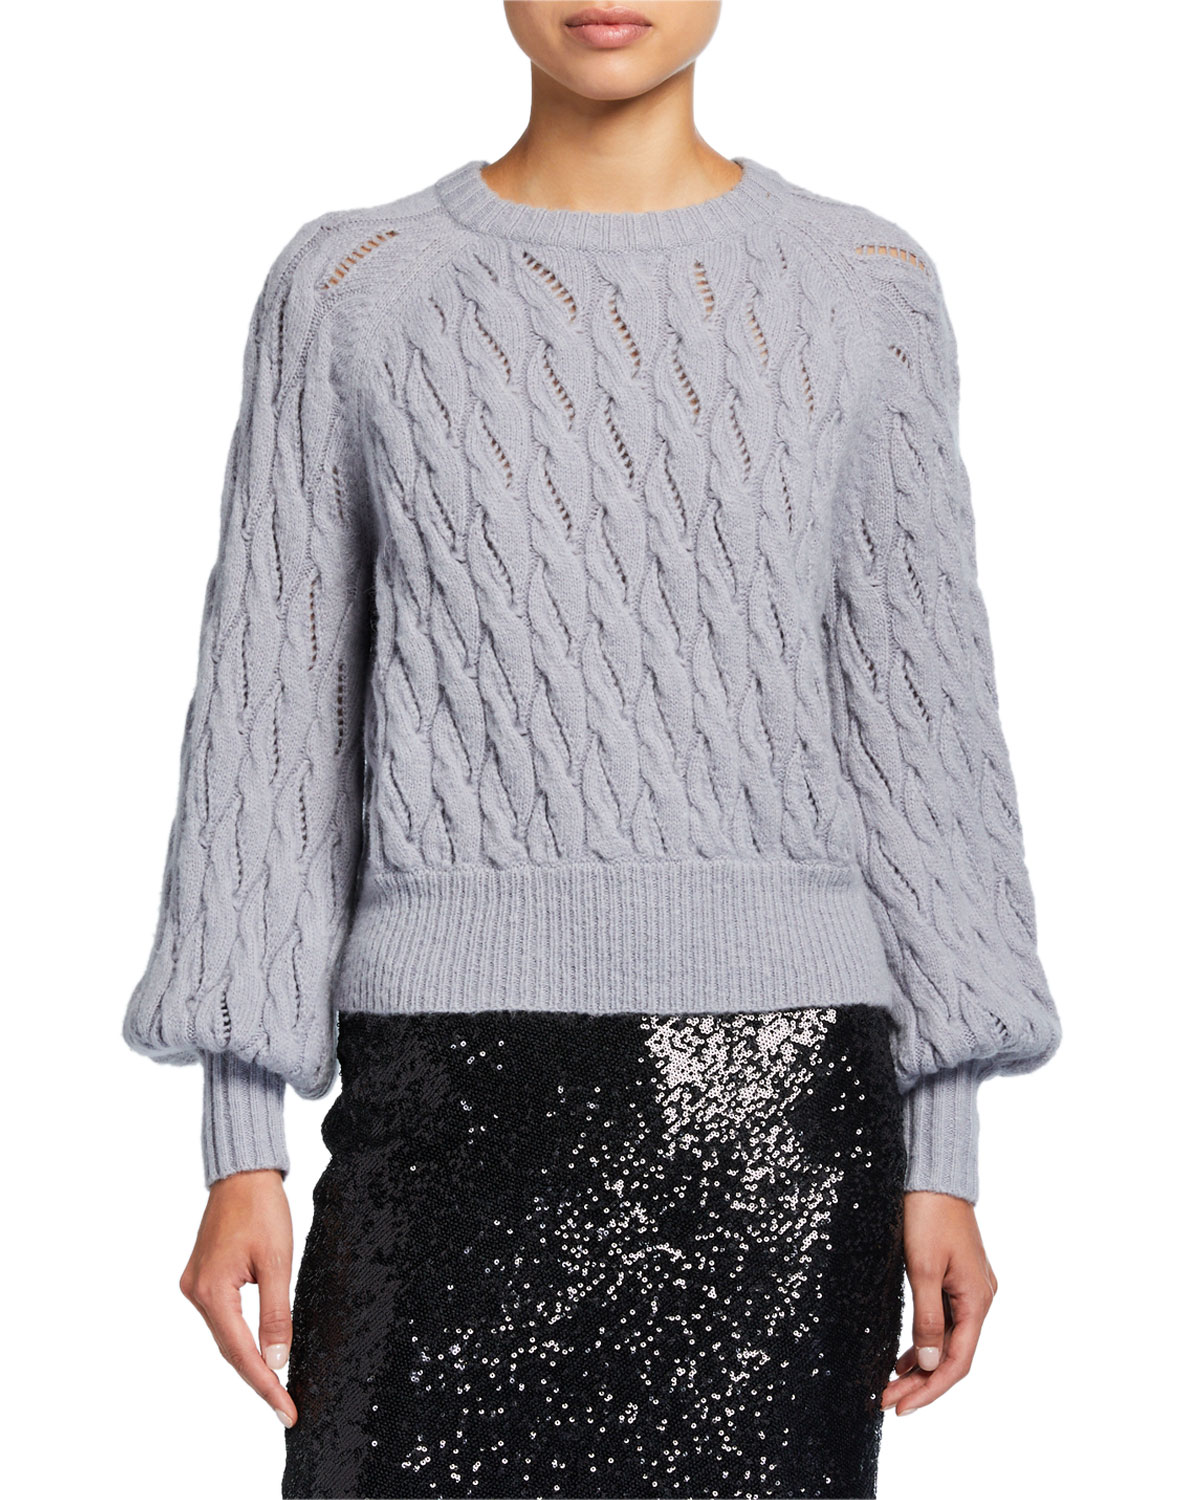 Cinq À Sept Knits Campbell Knit Pullover Sweater